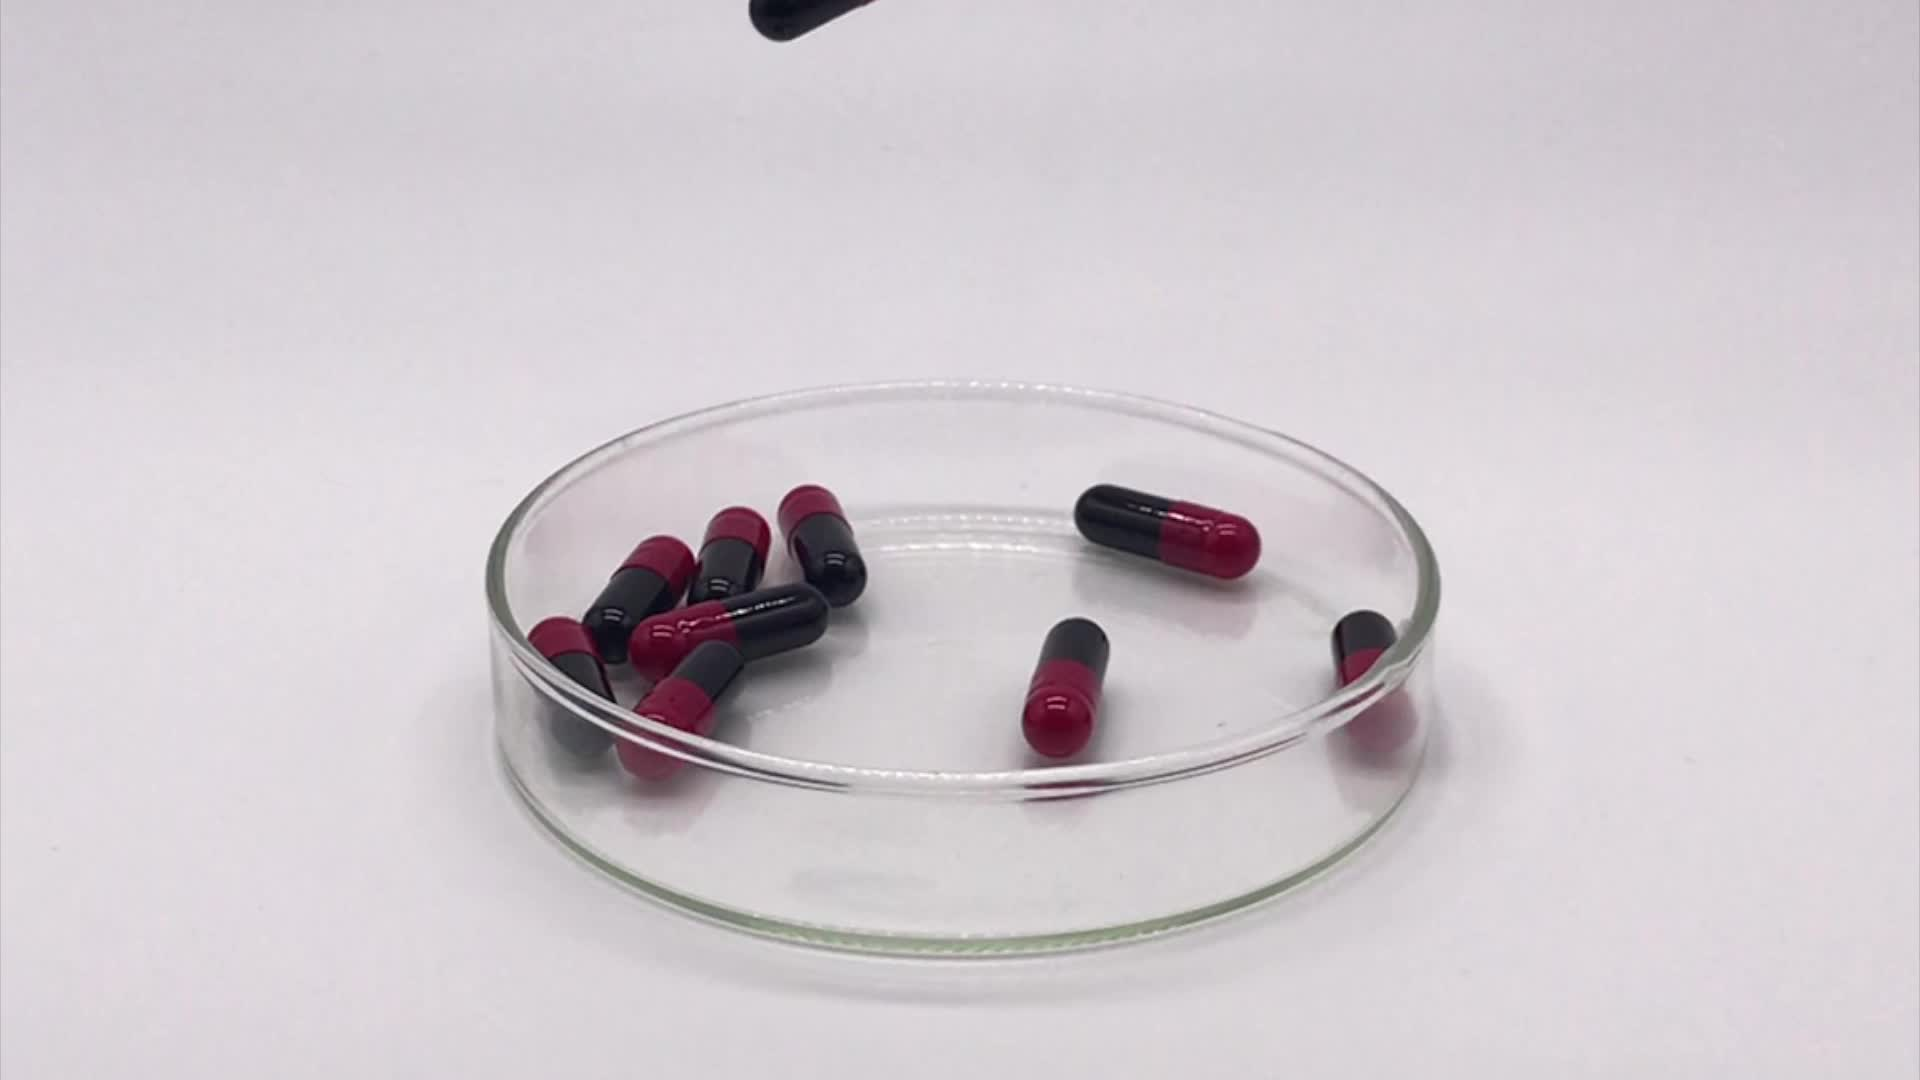 All szie empty gelatin capsules health empty capsule  black and red for medicine